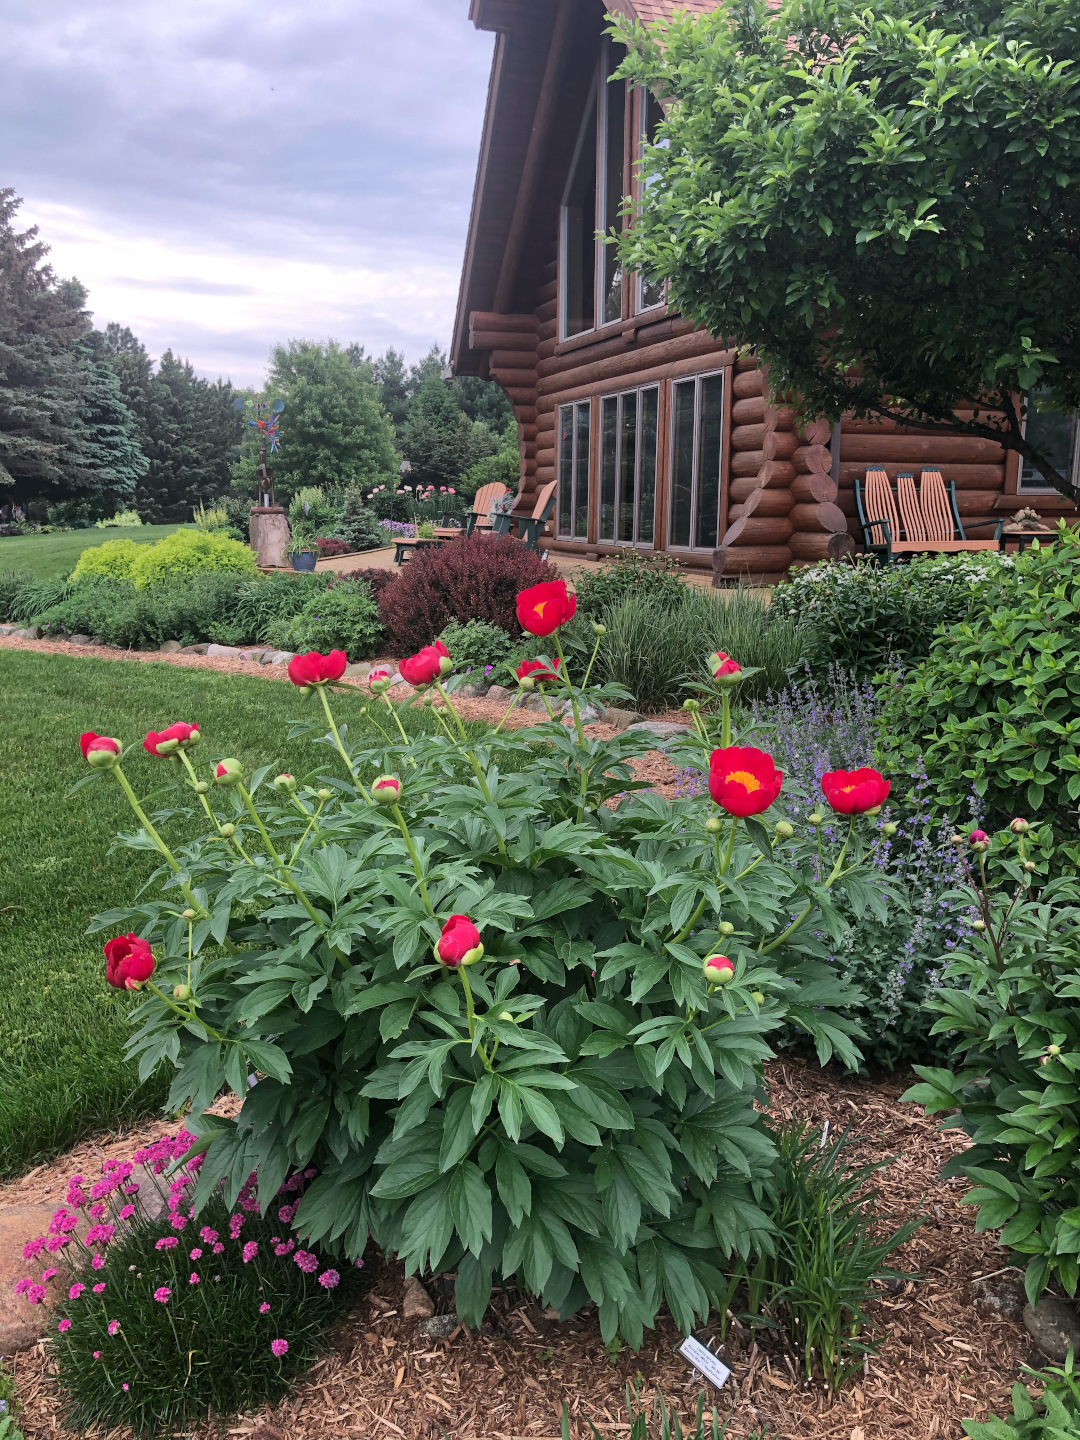 A bright red peony in a garden in front of a log home